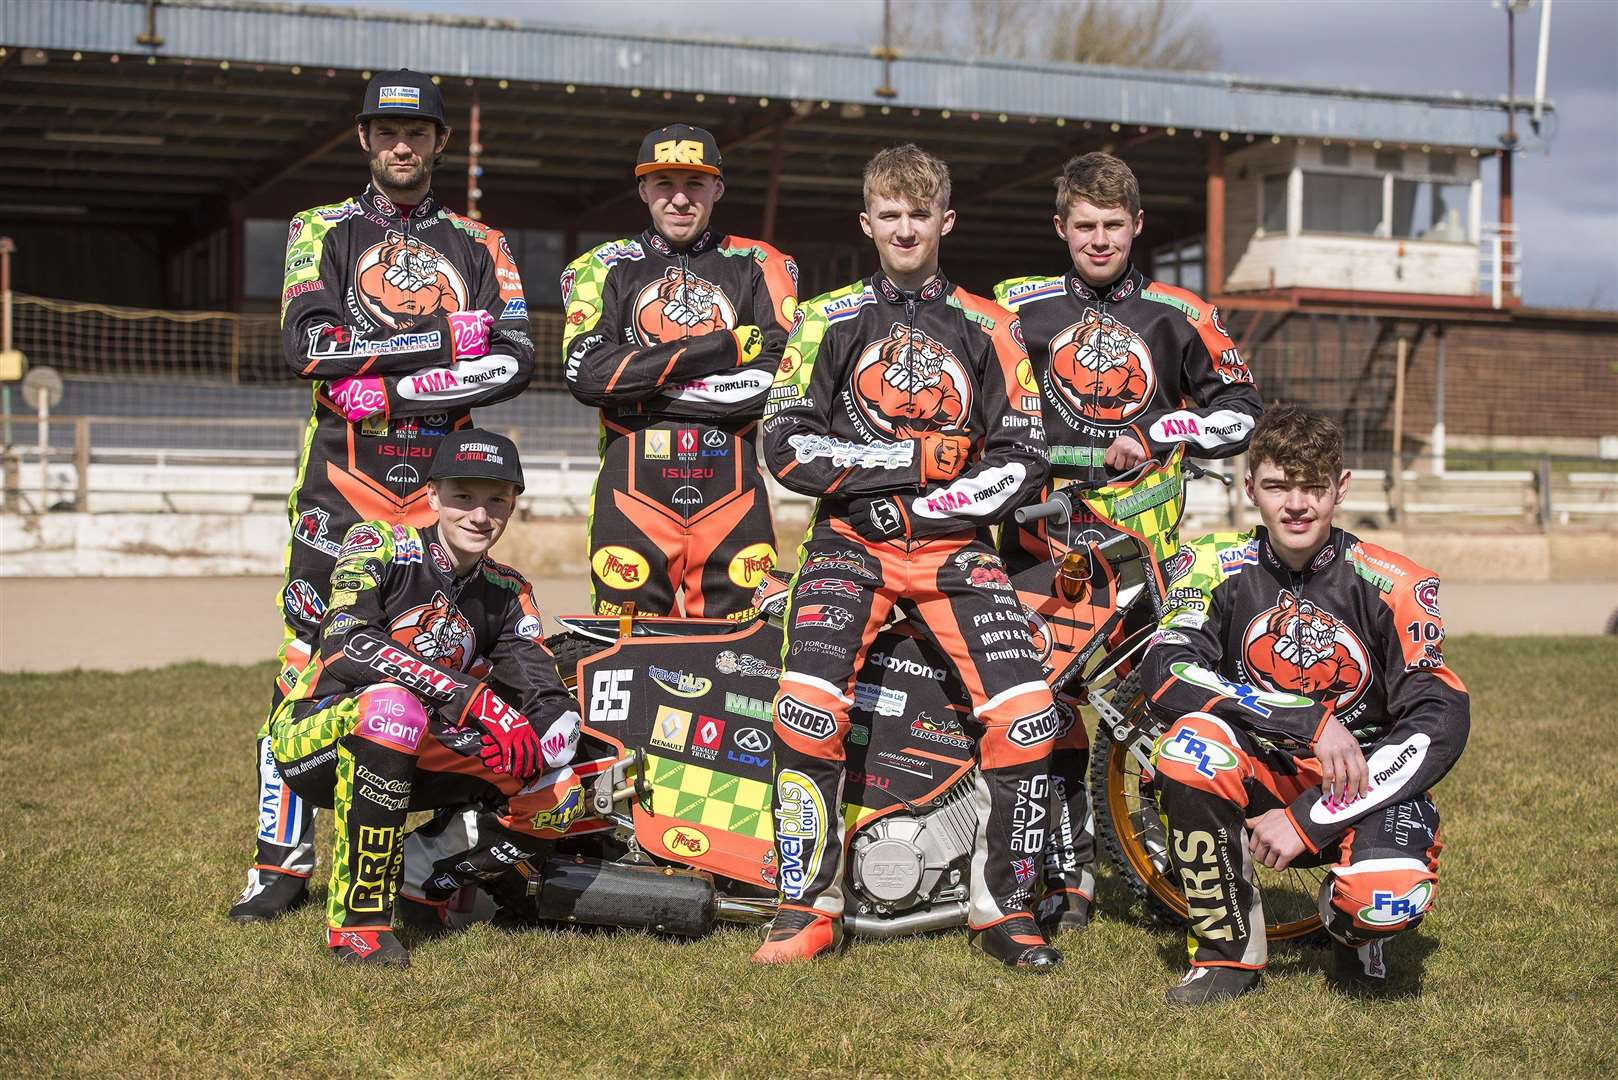 Mildenhall Fen Tigers Pre season practice day...Mildenhall Fen Tigers 2018 - Back row Left to right: Danny Ayres, Ryan Kingsley, Jordan Jenkins,Josh Bailey Front row left to right: Drew Kemp, Sam Bebee, ..Picture Mark Westley. (2973925)